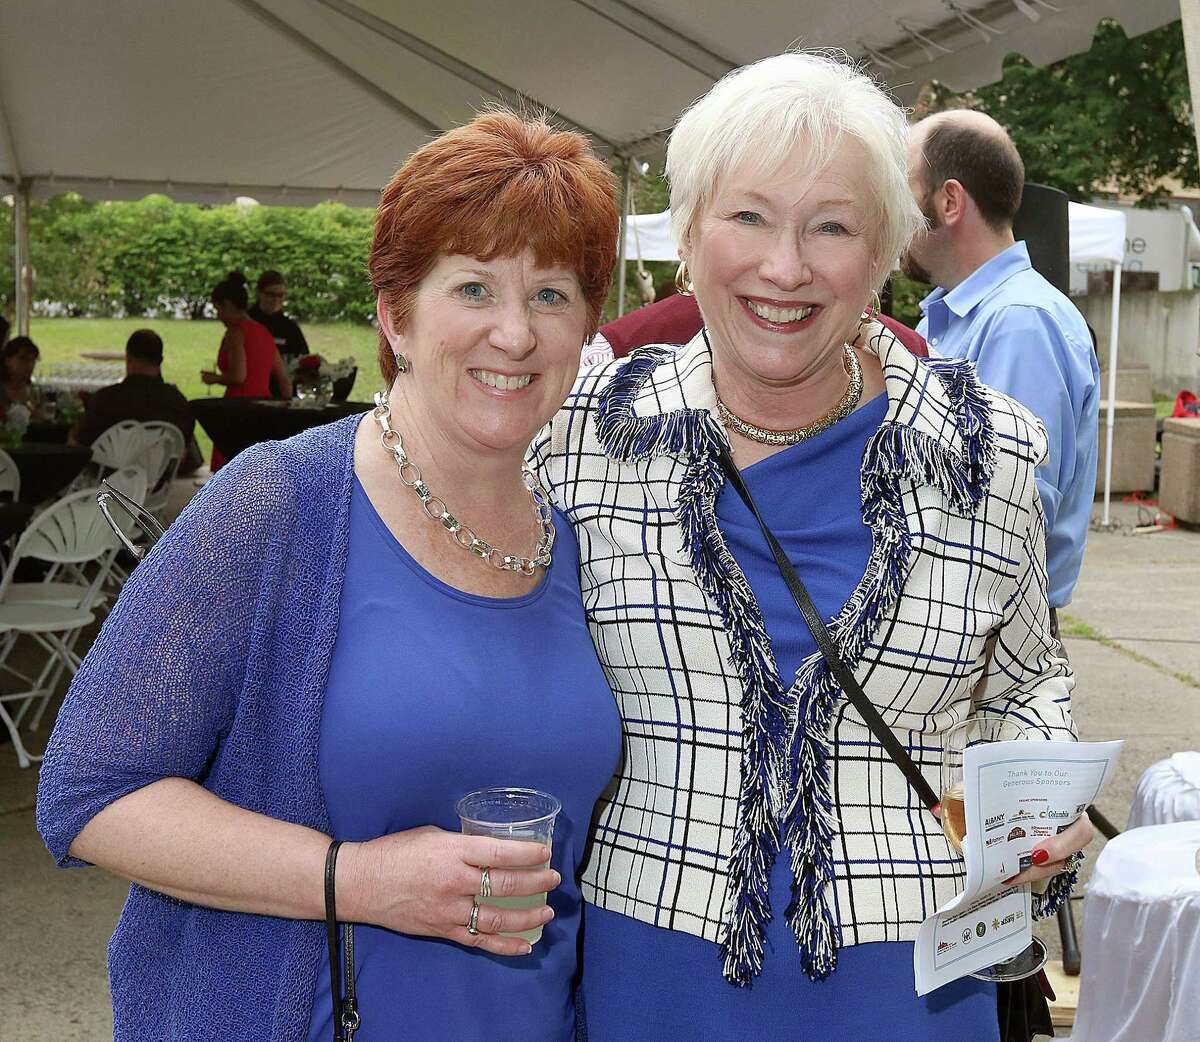 Albany, NY - June 12, 2015 - (Photo by Joe Putrock/Special to the Times Union) - Albany Mayor Kathy Sheehan(left) poses with State University of New York Chancellor Nancy Zimpher(right) during the Downtown Albany Business Improvement District's Downtown Garden Party and #captureALB launch honoring Park Playhouse producing artistic director and Palace Theatre managing director Owen Smith in Federal Plaza Park in downtown Albany. ORG XMIT: 01